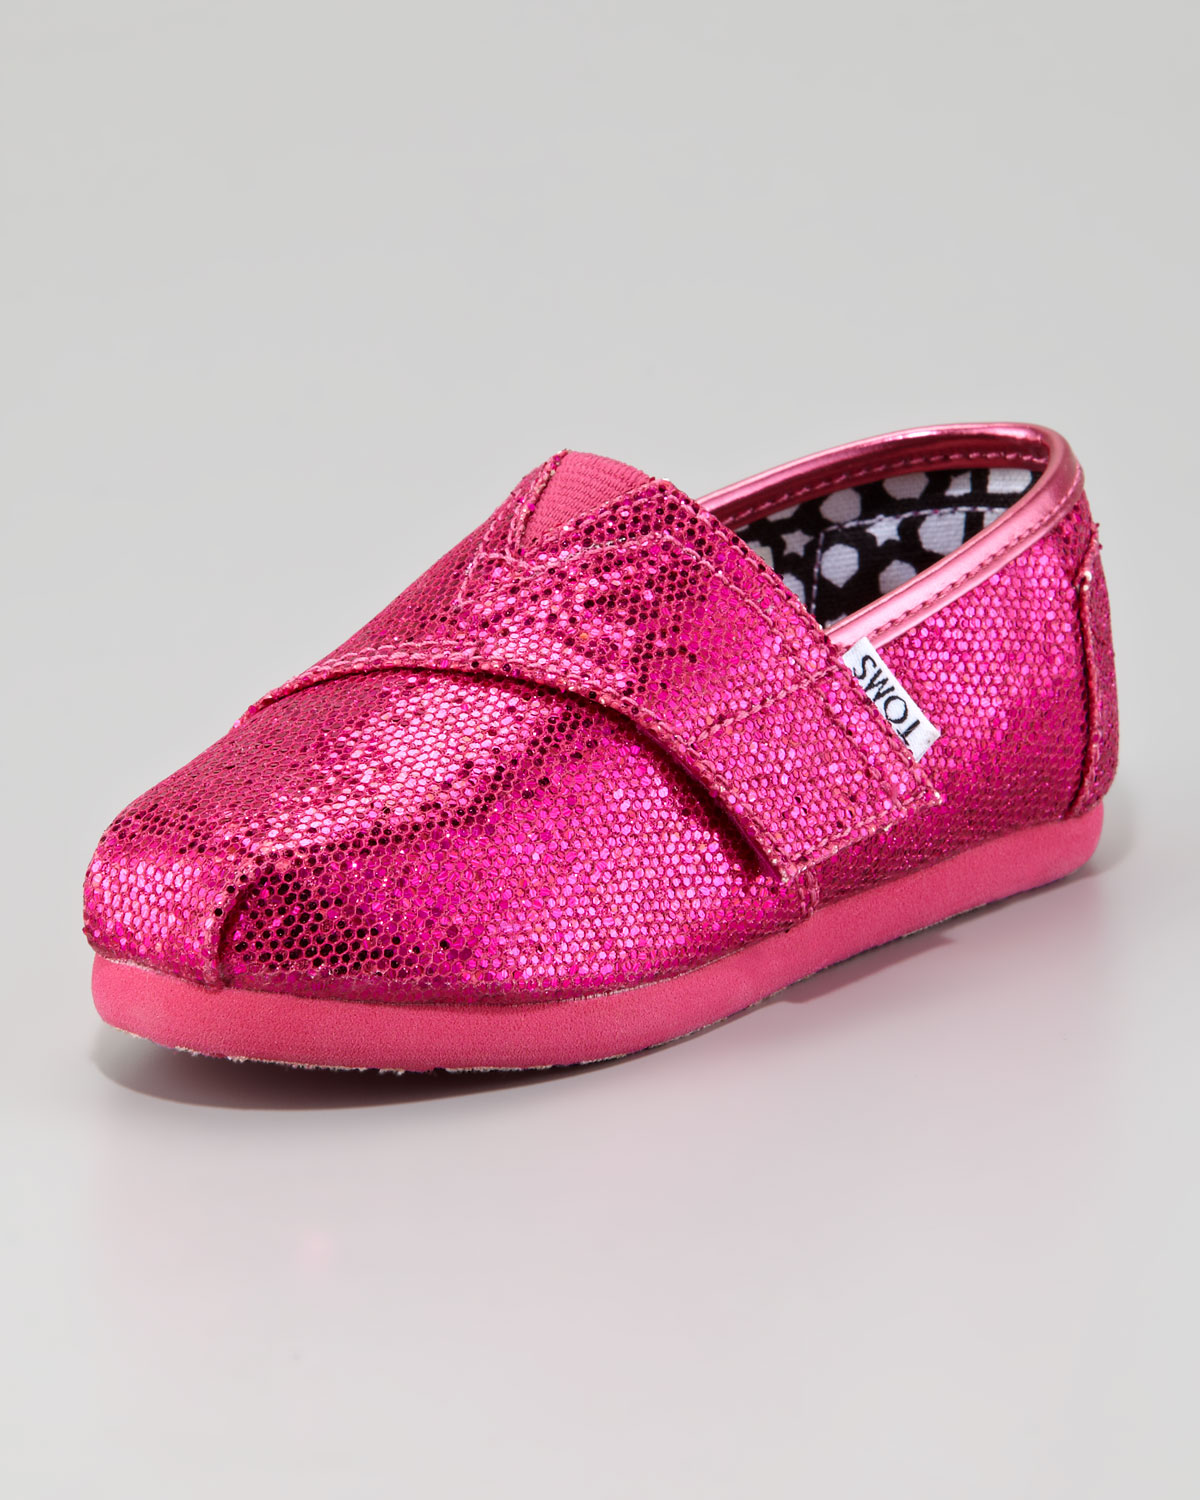 Lyst Toms Hot Pink Glitter Shoe Tiny In Pink